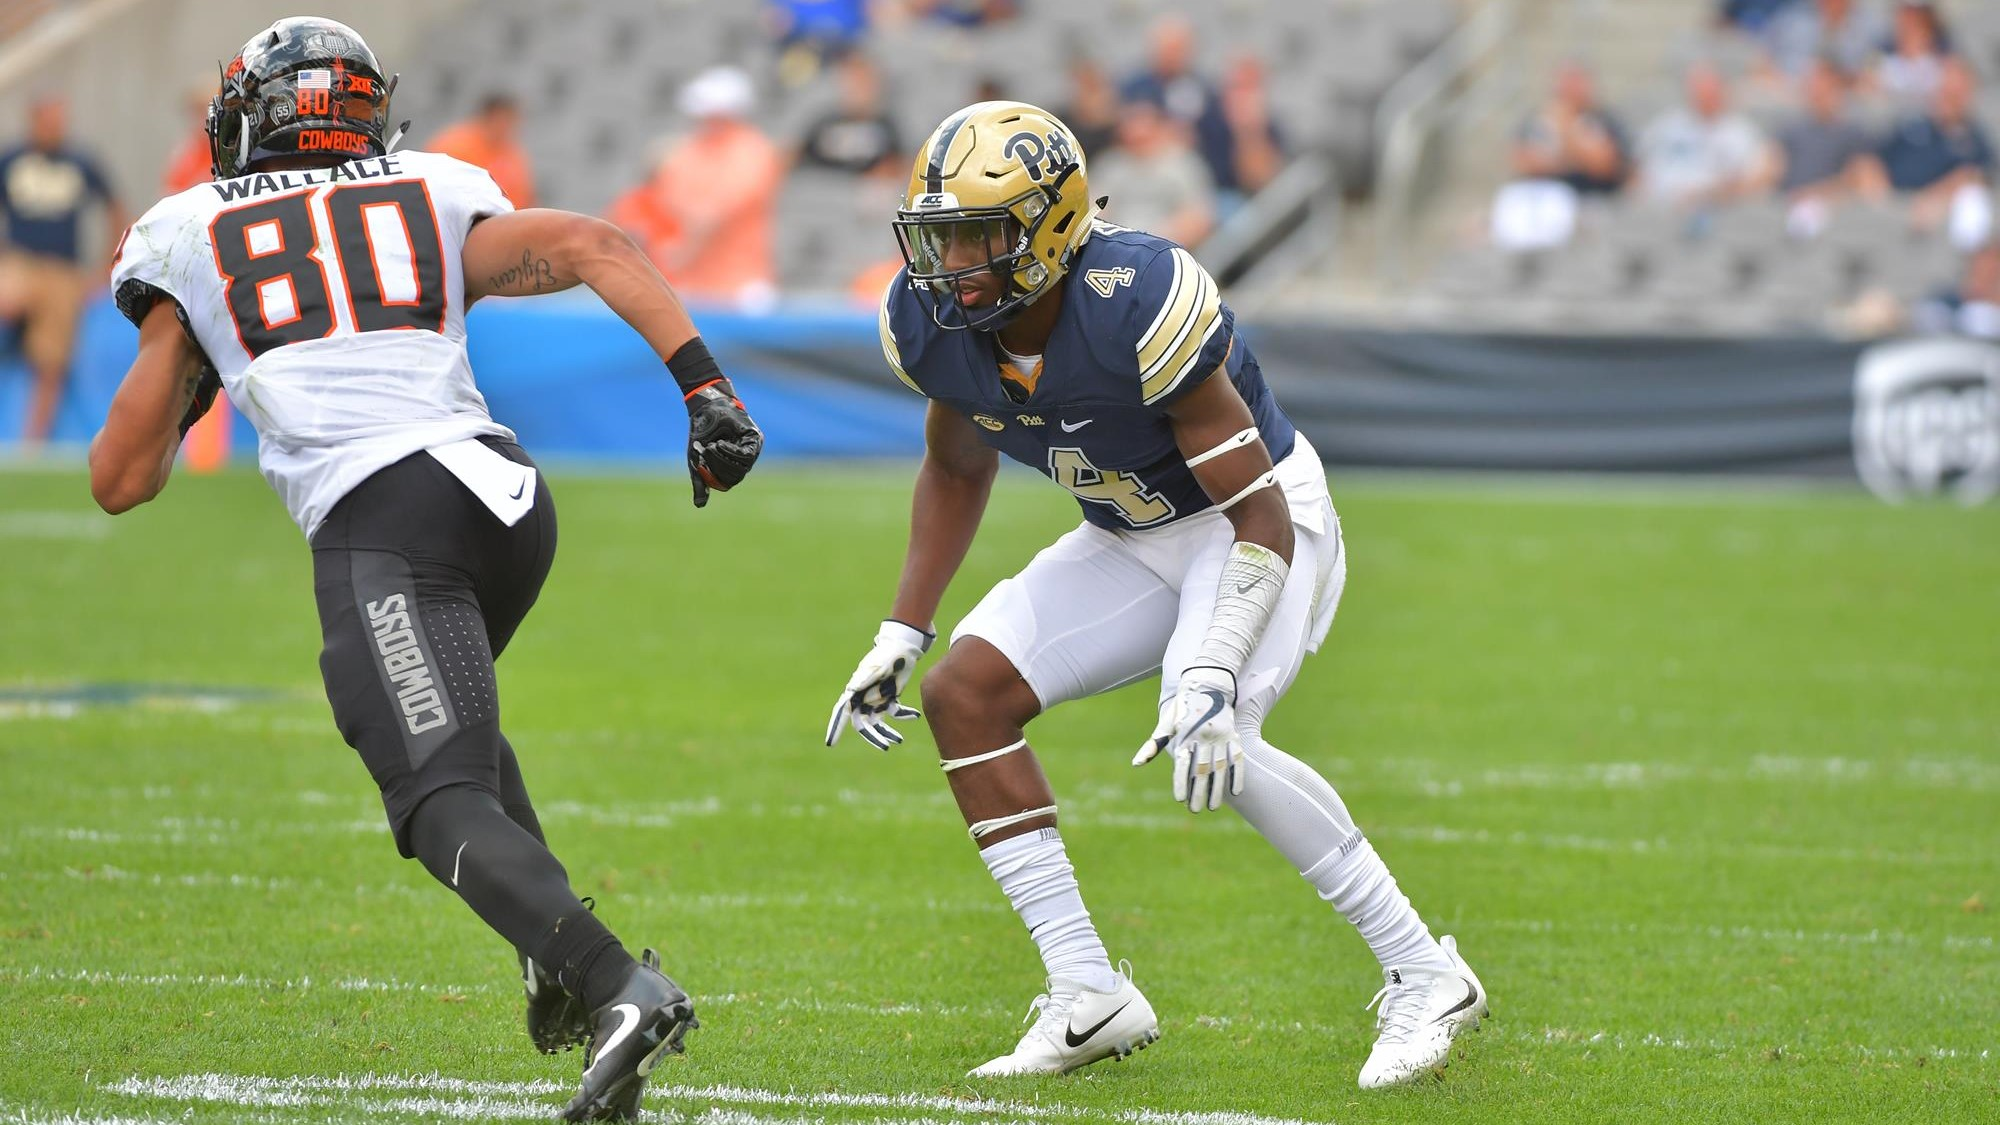 Search Results For 2018 Fiu Golden Panthers Football Roster